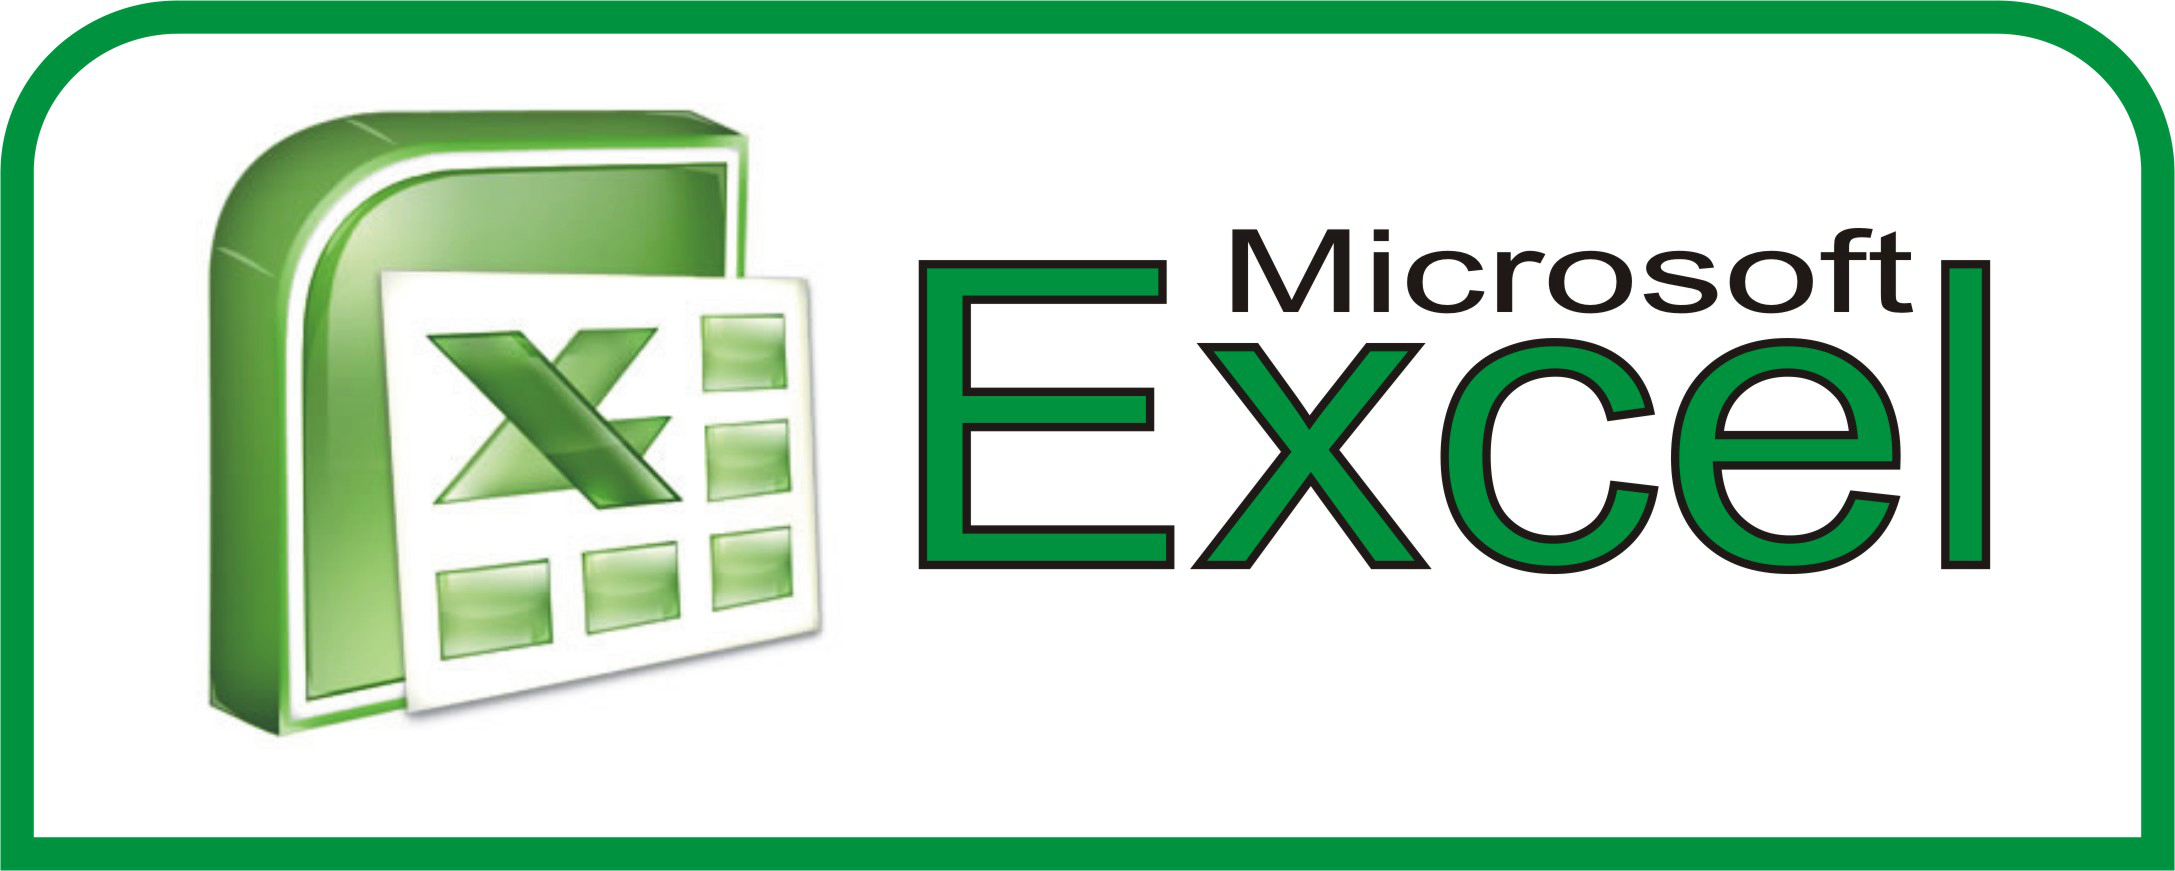 Ediblewildsus  Personable  Excel Shortcuts You Probably Didnt Know About  Techdissected With Magnificent Excel Wrap Text In Cell Besides Wedding Guest List Excel Furthermore Excel Insert Checkbox With Astonishing How To Link Sheets In Excel Also Excel Division In Addition Create Timeline In Excel And How To Edit Drop Down List In Excel As Well As Vba Excel Tutorial Additionally How To Remove A Password From Excel From Techdissectedcom With Ediblewildsus  Magnificent  Excel Shortcuts You Probably Didnt Know About  Techdissected With Astonishing Excel Wrap Text In Cell Besides Wedding Guest List Excel Furthermore Excel Insert Checkbox And Personable How To Link Sheets In Excel Also Excel Division In Addition Create Timeline In Excel From Techdissectedcom